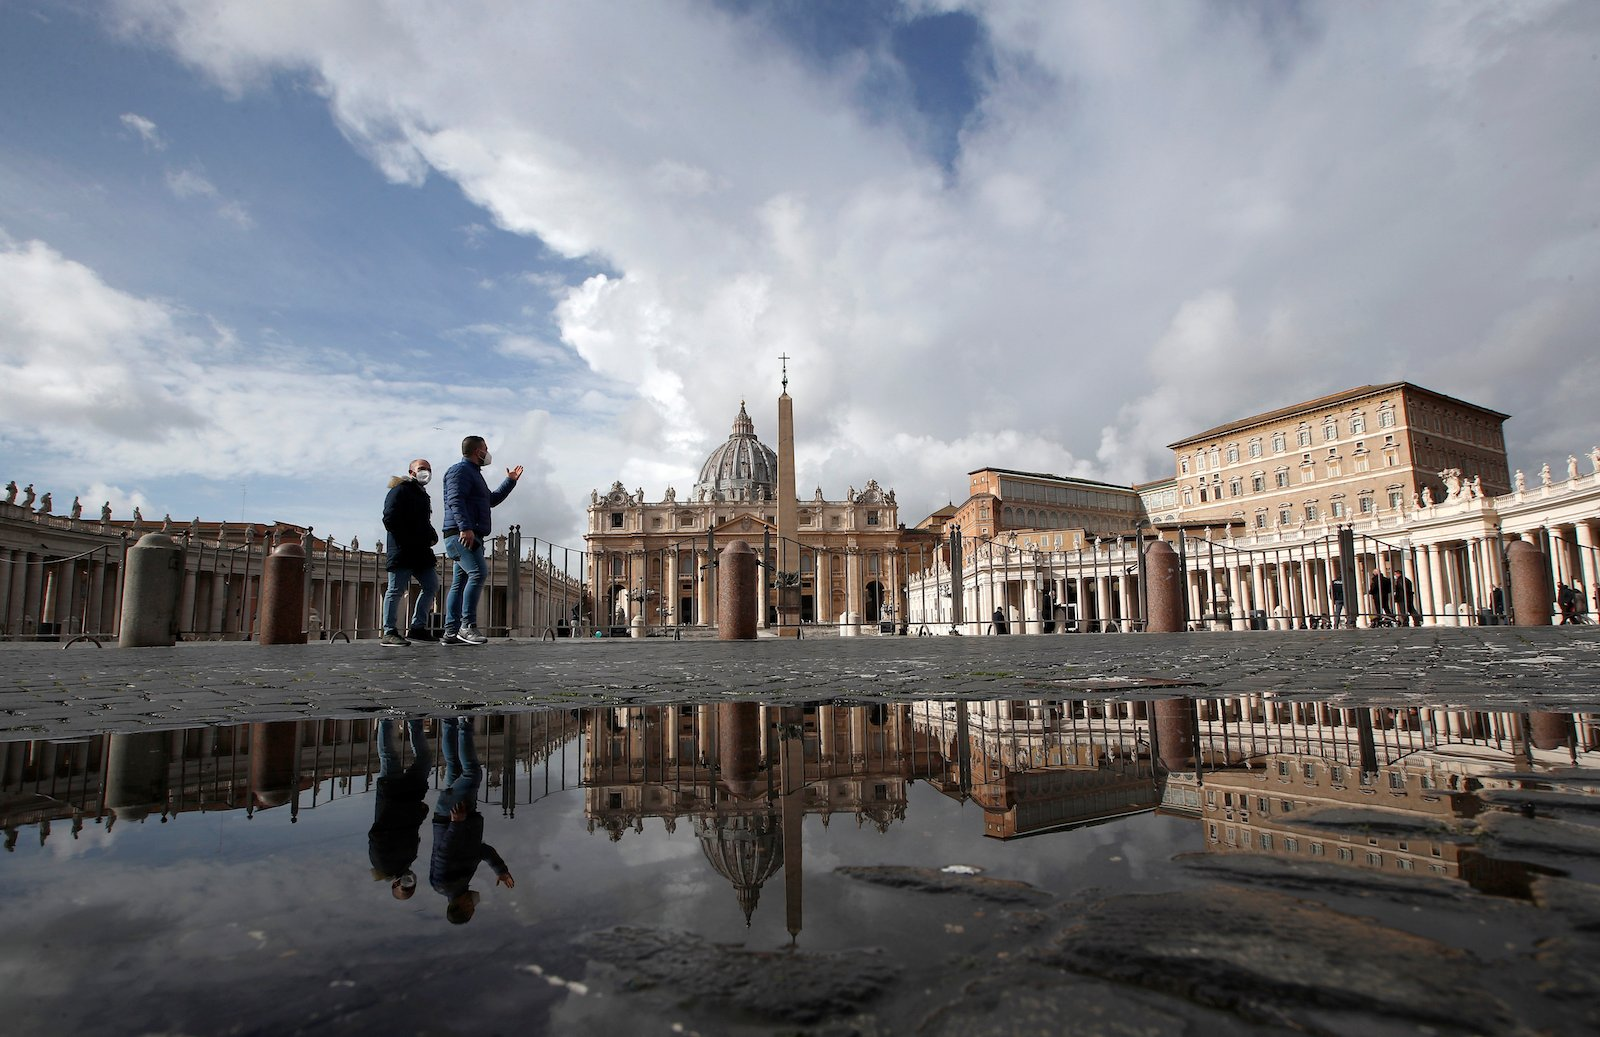 People are reflected on a puddle as they walk in an empty St.Peter's Square, at the Vatican, on Jan. 31, 2021. (AP Photo/Alessandra Tarantino)